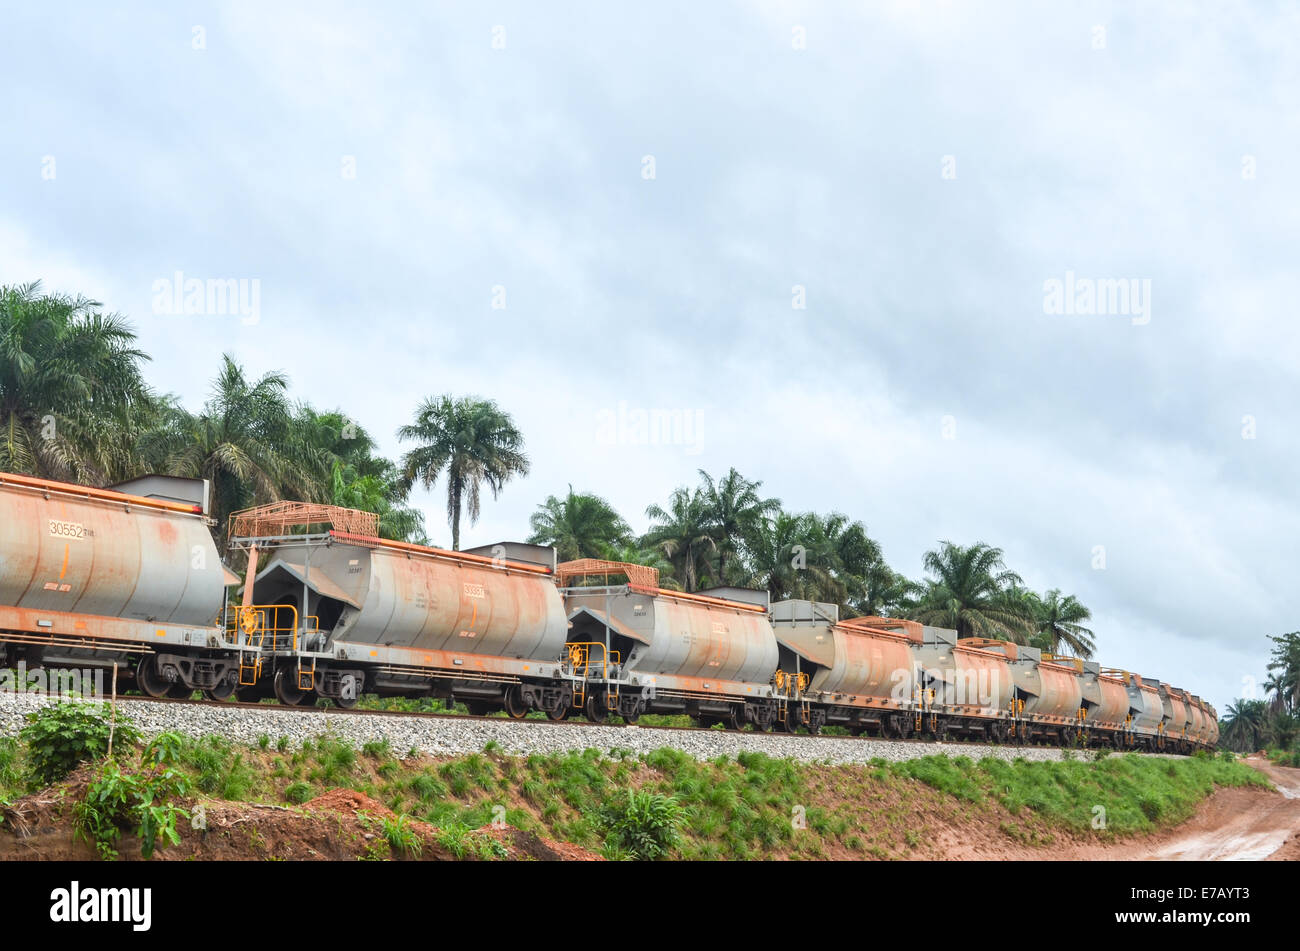 Freight train in Sierra Leone, between Port Loko and Lungi, illustrating the Chinese investment in Africa - Stock Image